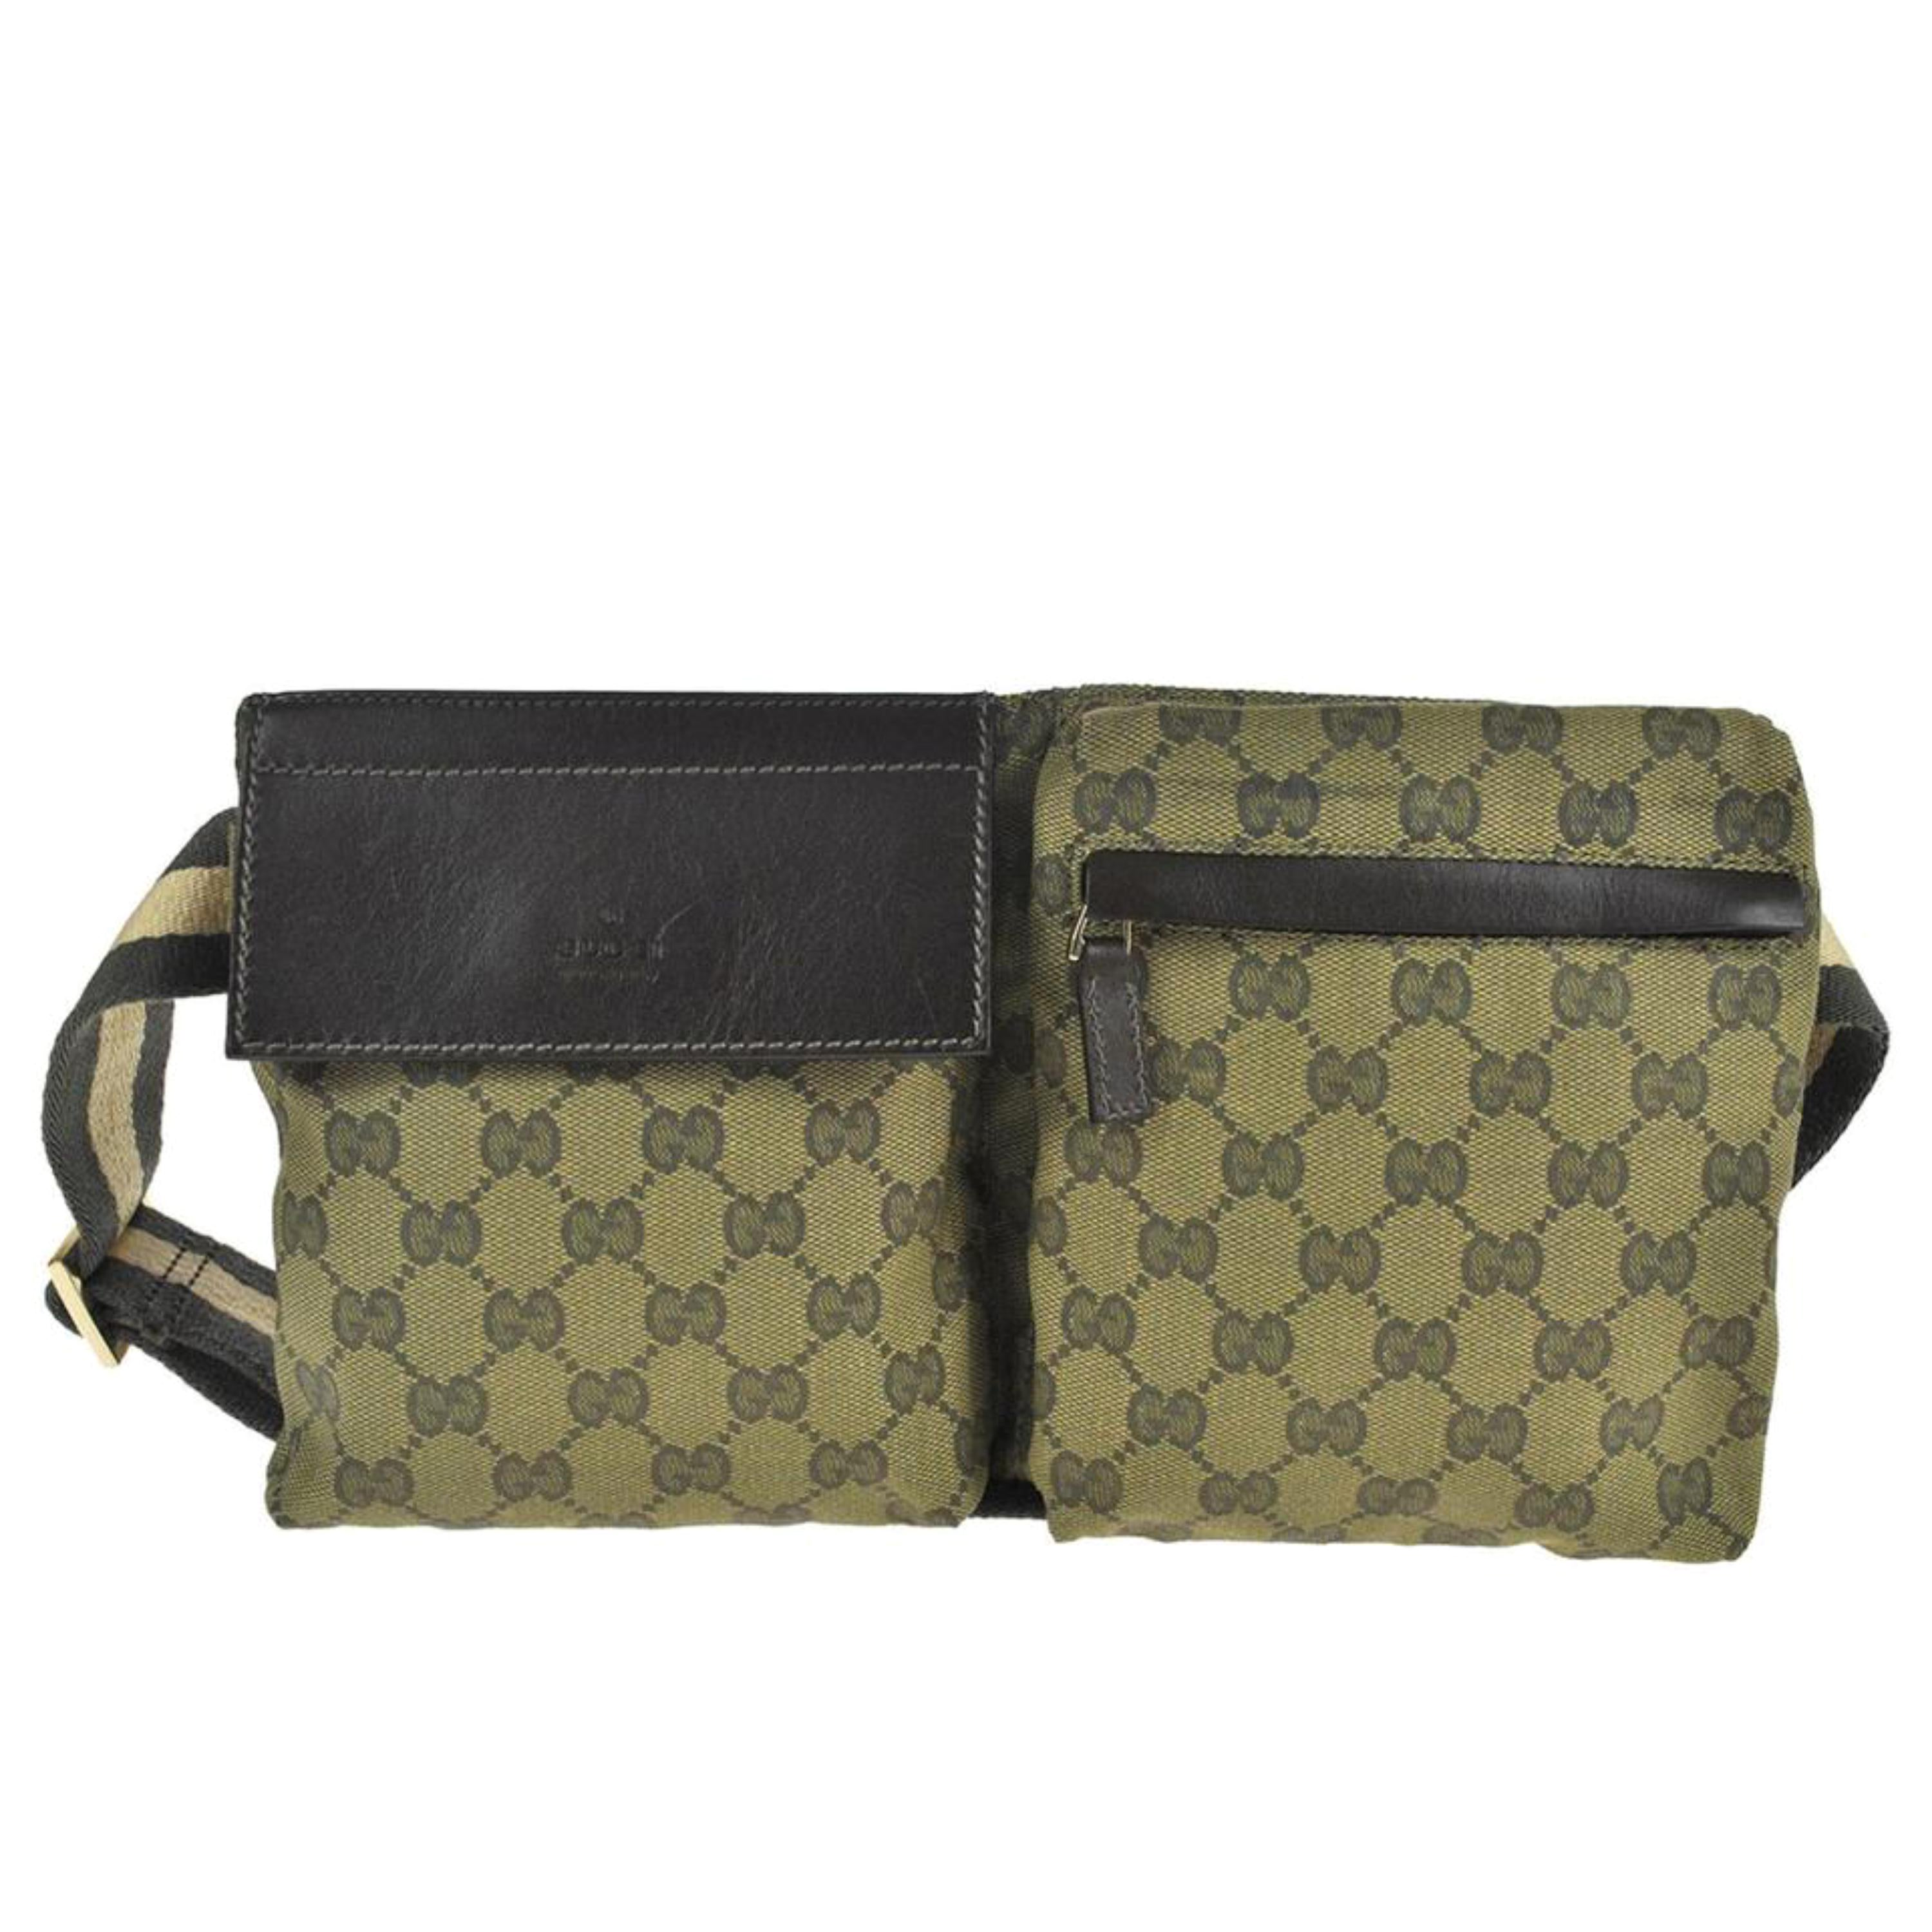 e53104480247c4 Gucci (Ultra Rare) Monogram Web Khaki Gg Fanny Pack Waist Pouch 868028  Green Can at 1stdibs